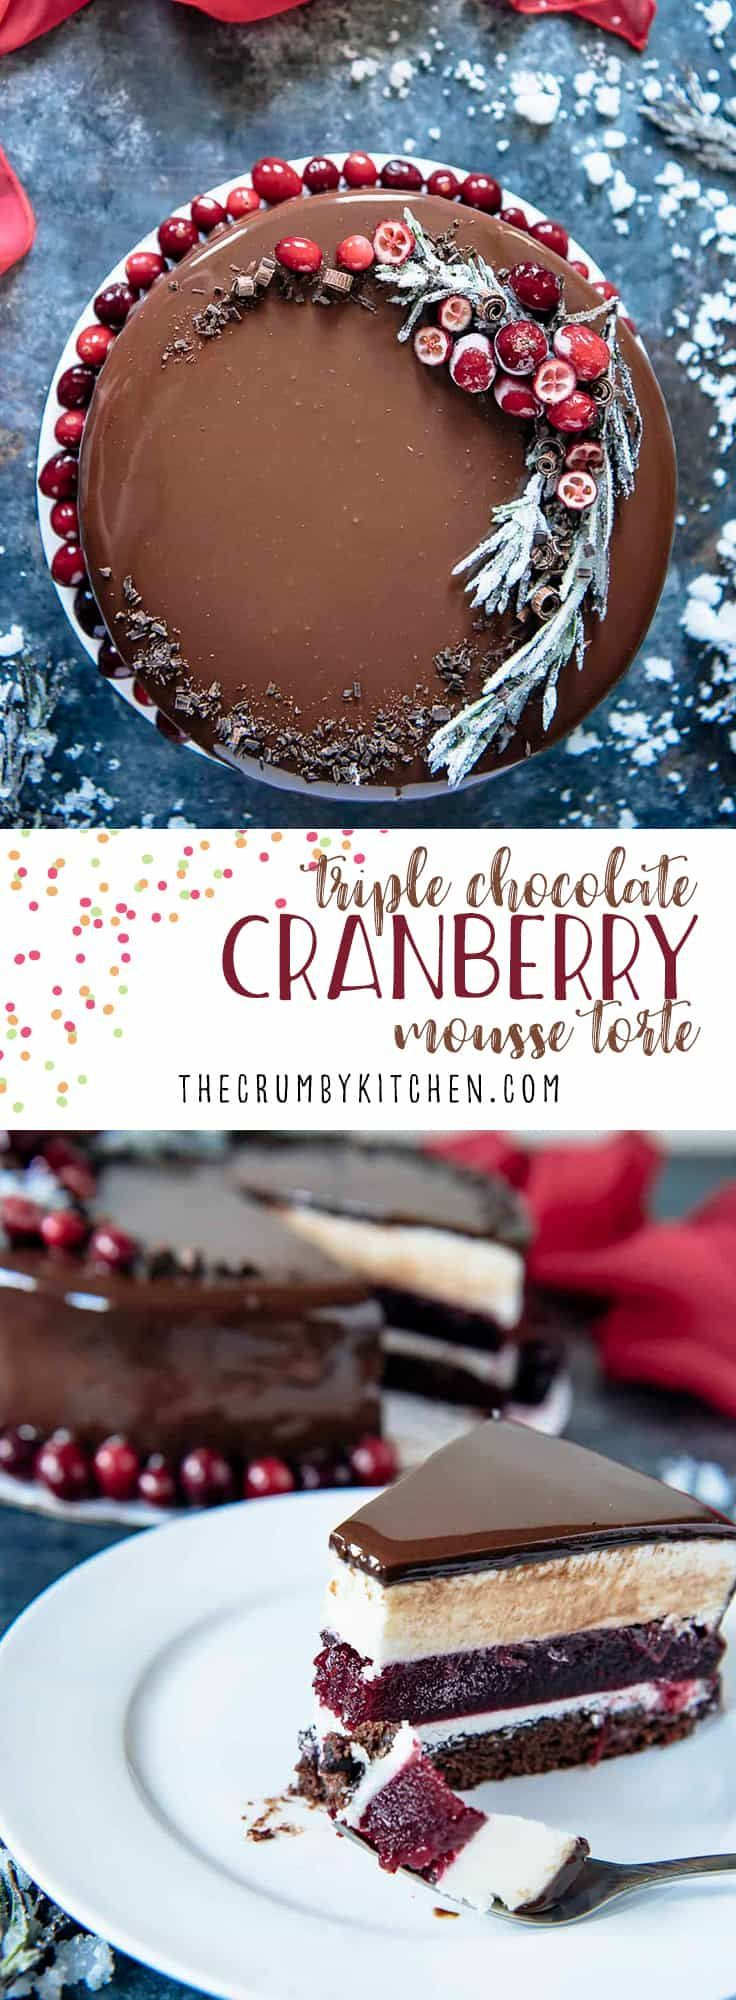 This Triple Chocolate Cranberry Mousse Torte is a to-die-for addition to your holiday tables! Layers of milk chocolate brownie, creamy white chocolate mousse,and decadent dark chocolate mirror glaze encase a homemade cranberry jelly. #triplechocolate #chocolate #cranberry #mousse #chocolatemousse #whitechocolate #cake #torte #entremets #mirrorglaze #darkchocolate #dessert #christmas #holiday